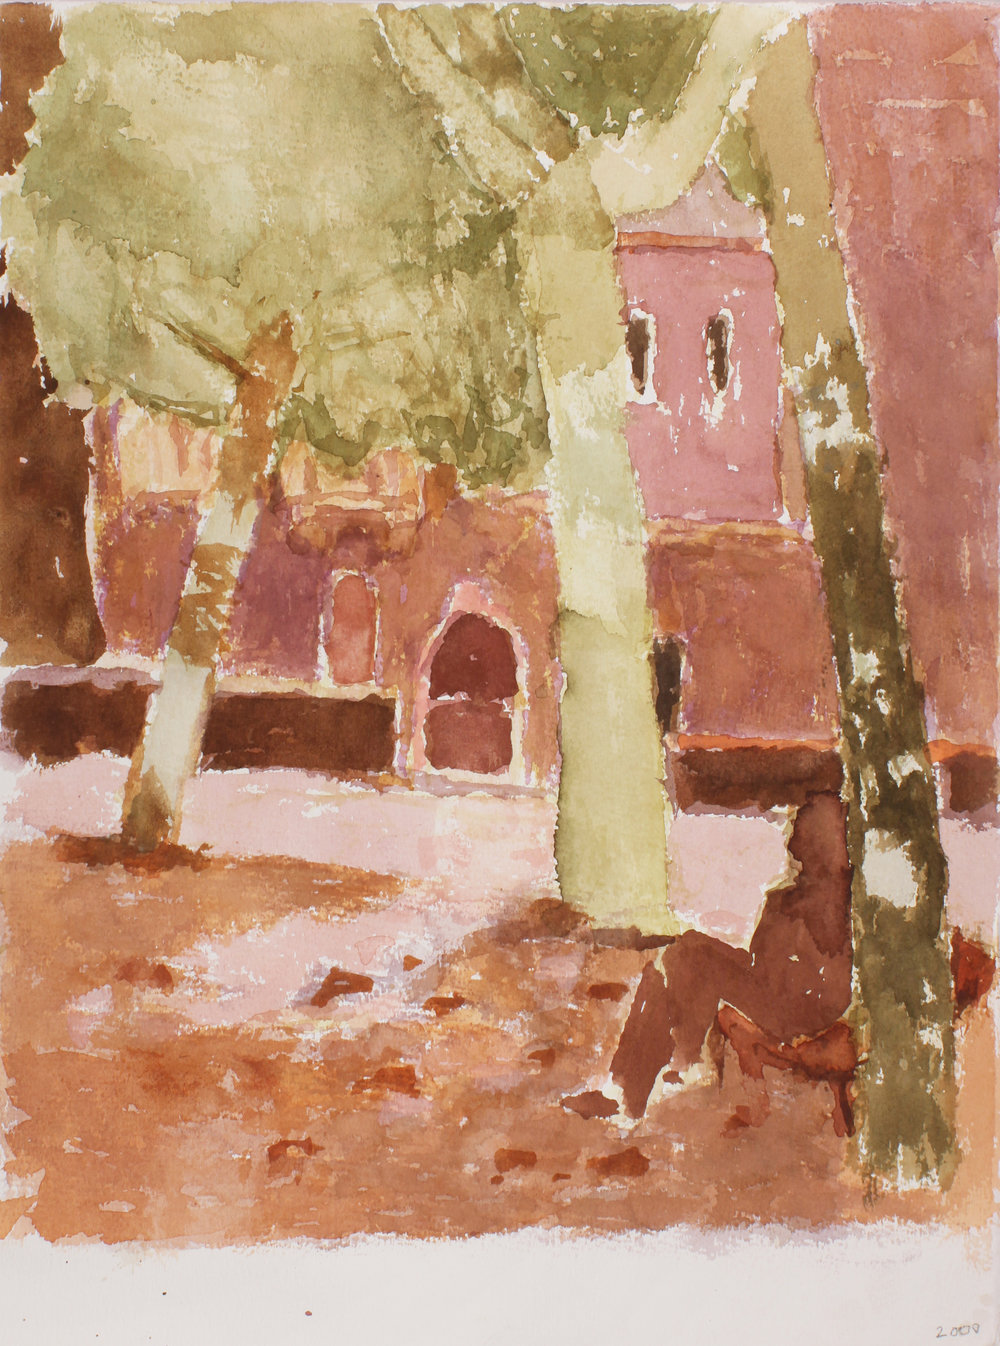 2000_Buildings_and_Garden_Cannaregio_Venice_watercolour_on_paper_15x11in_WPF333.jpg